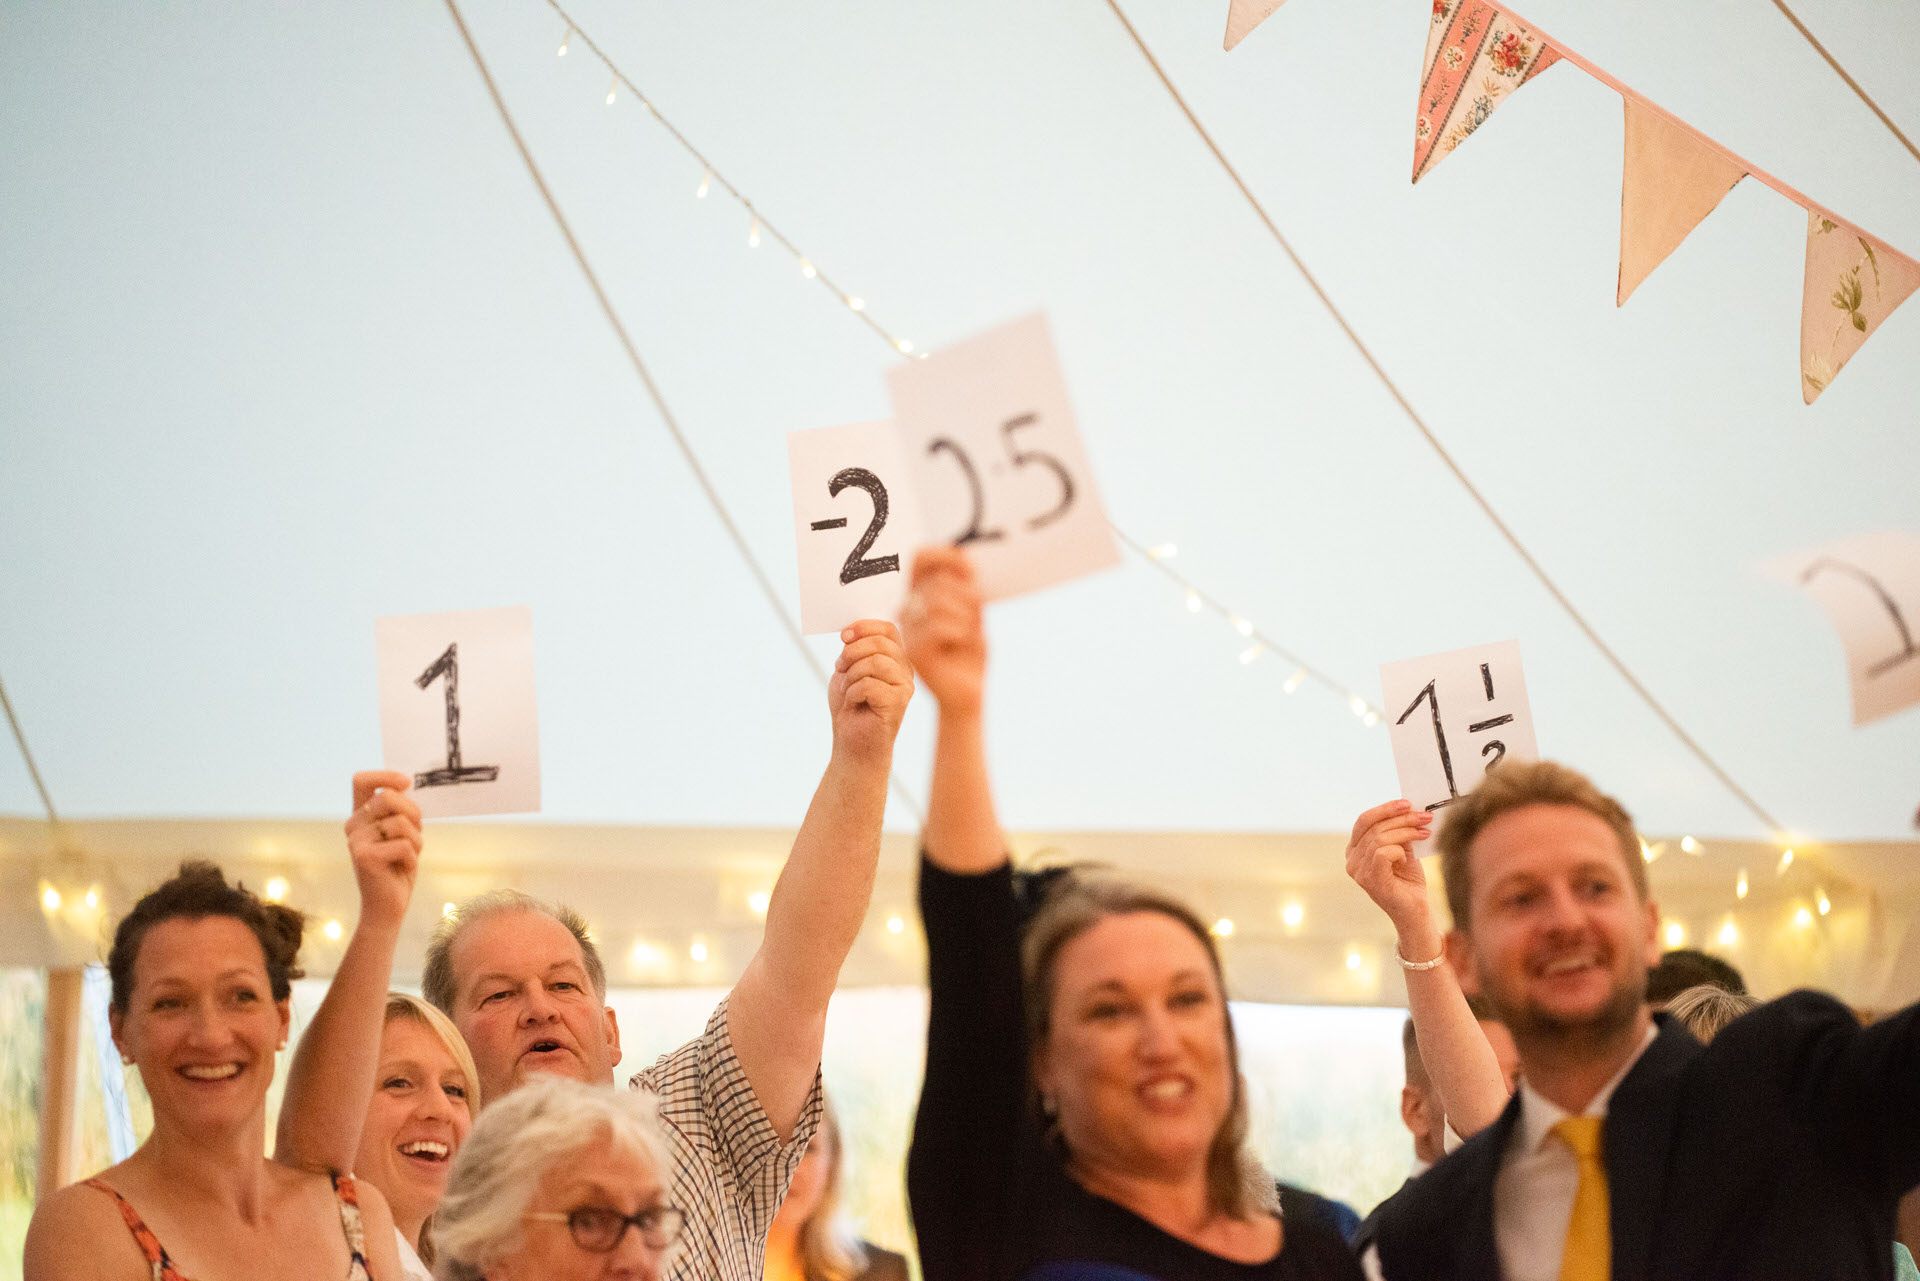 guests holding up scores for speech